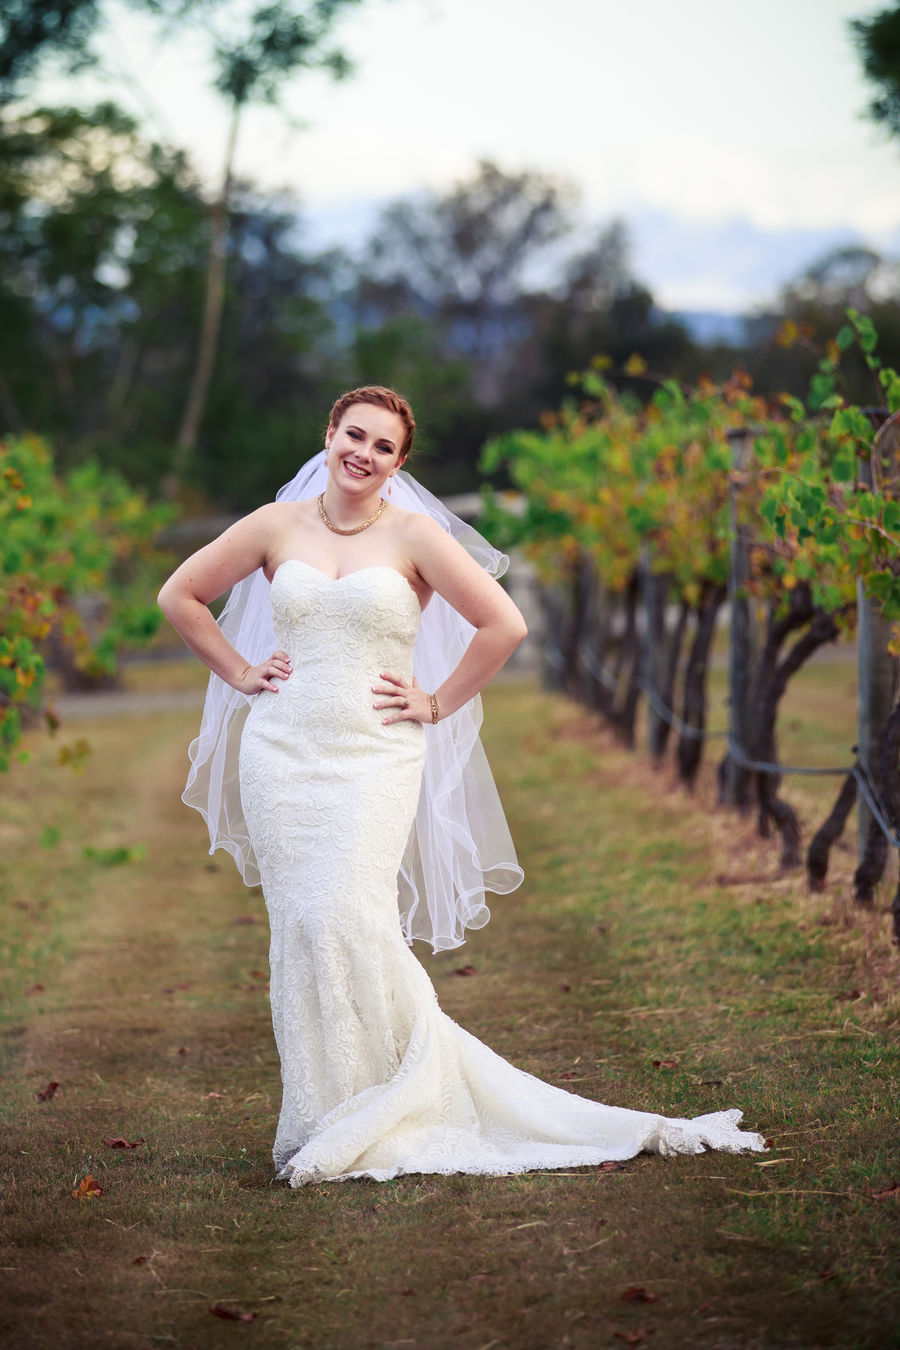 photo of Jes the bride between grape vines with hands on hips.